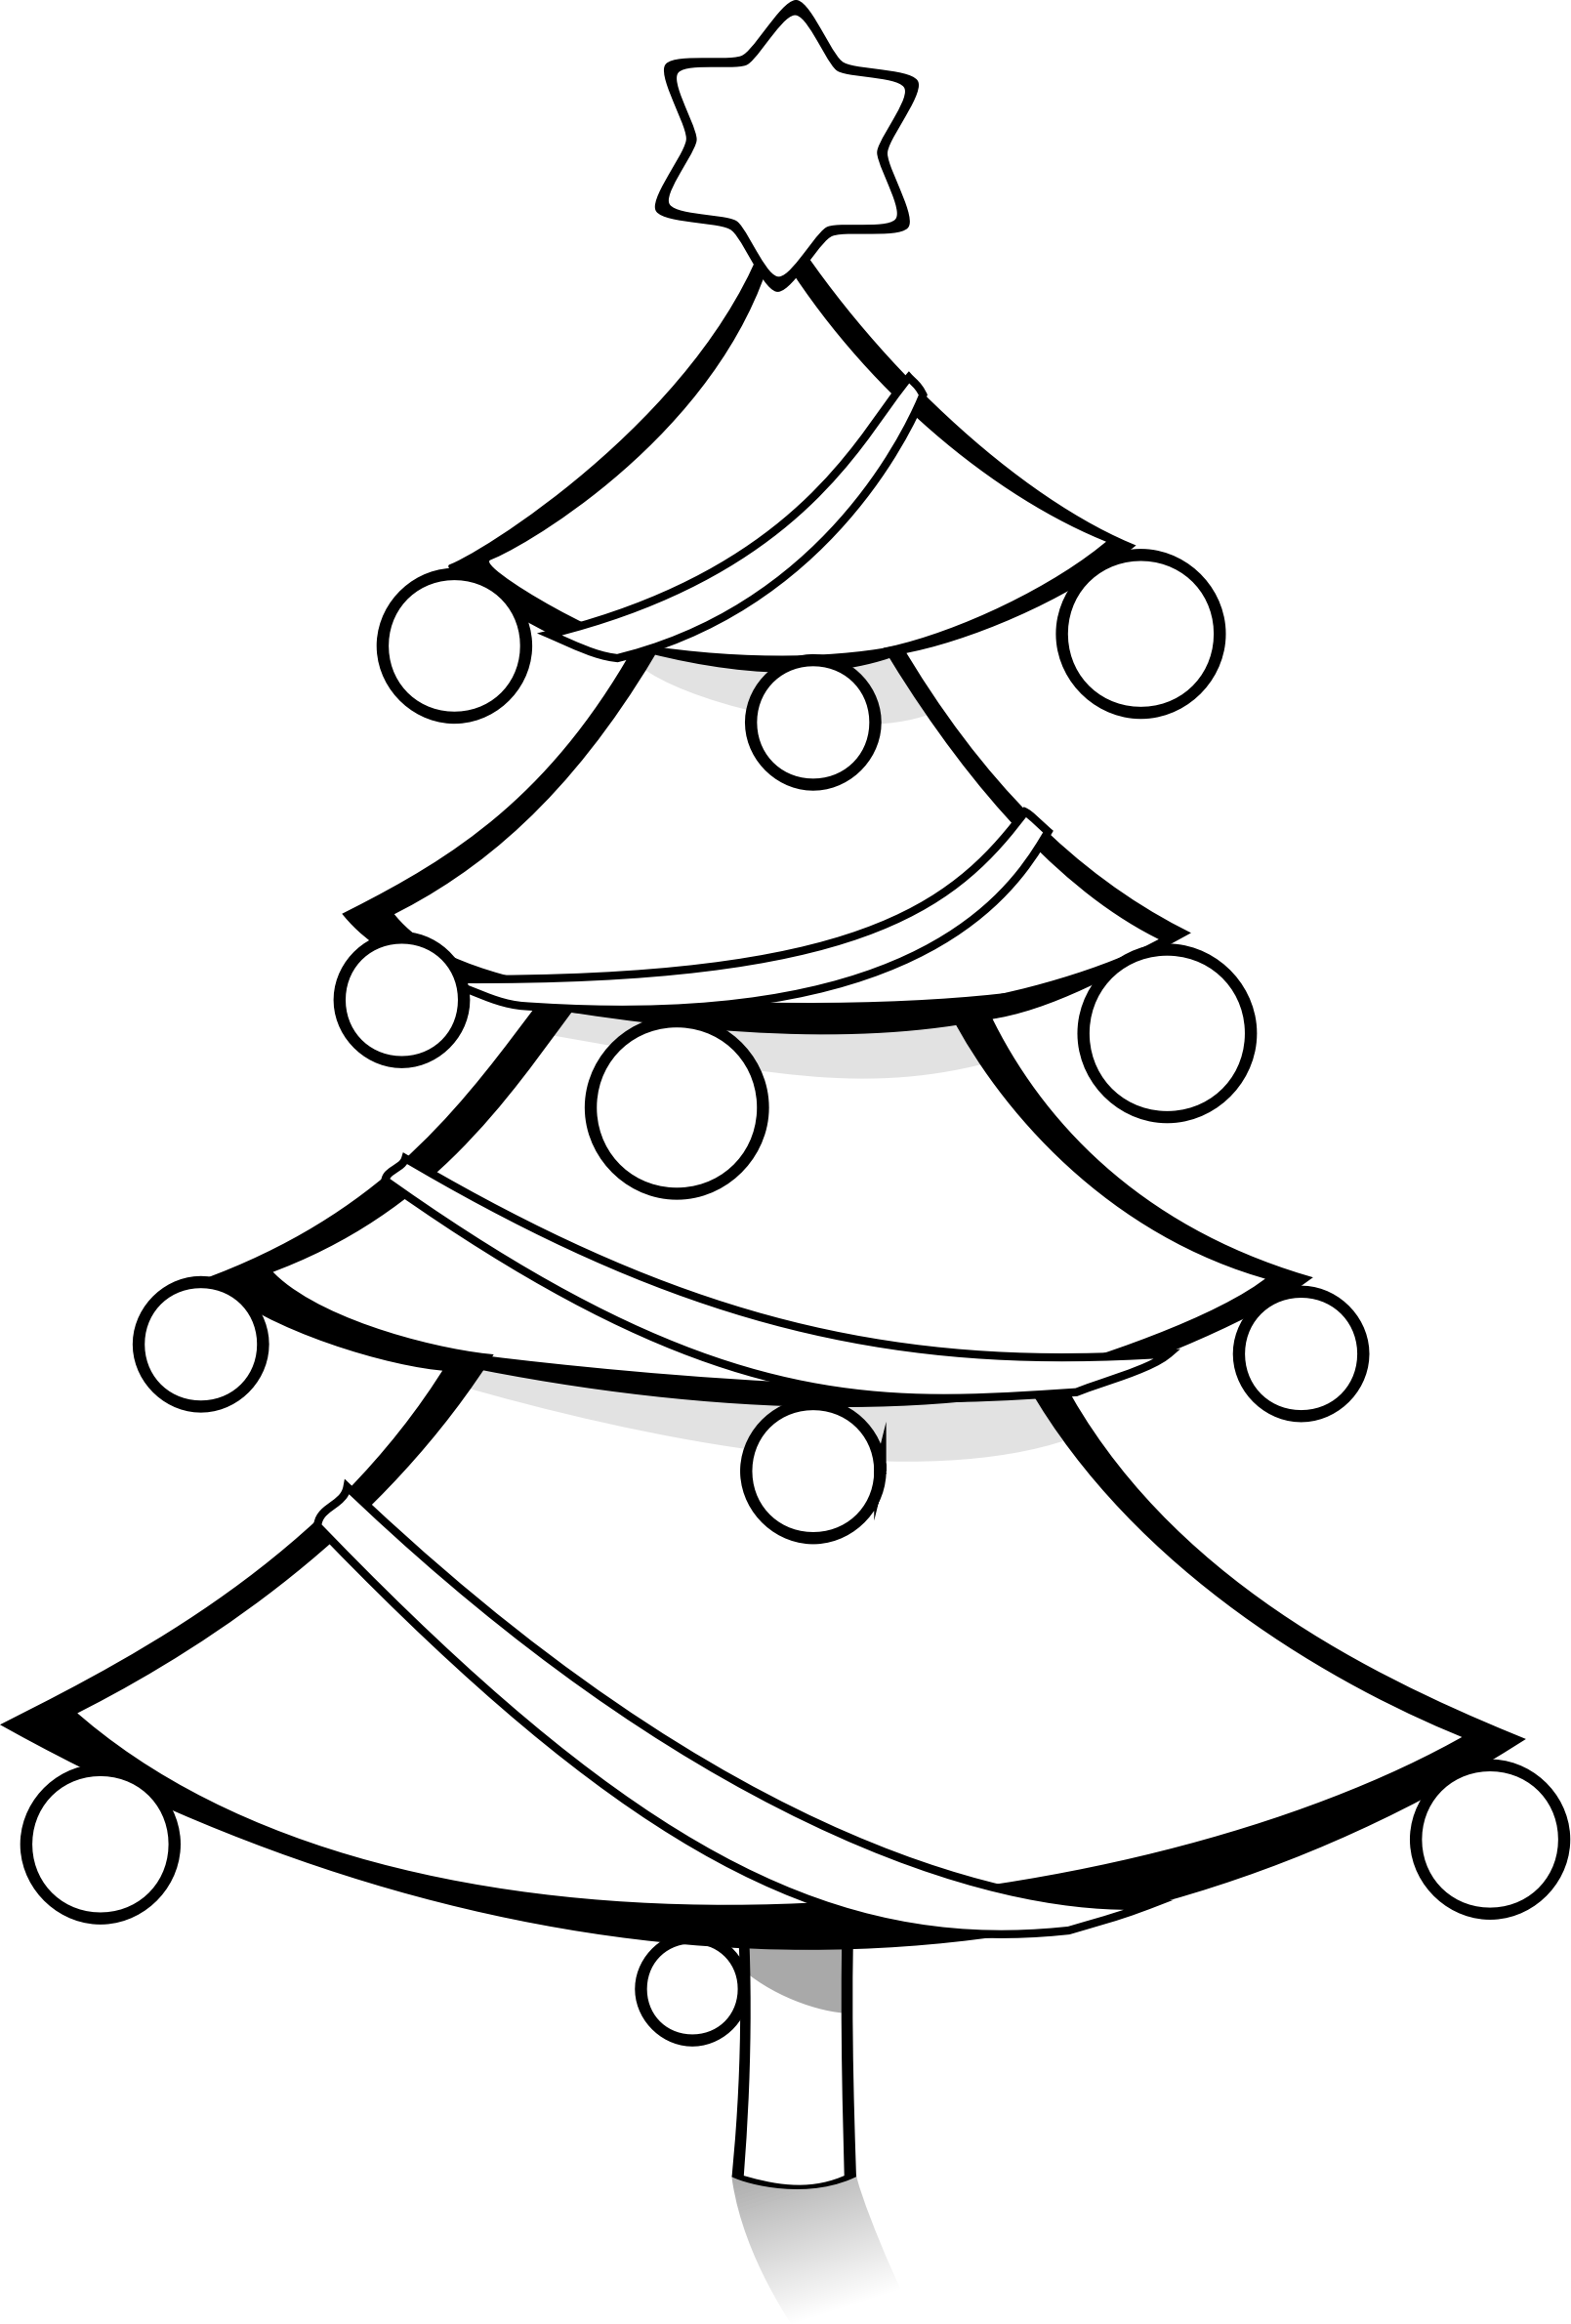 Christmas Tree Coloring Page By Pianobrad A Christmas